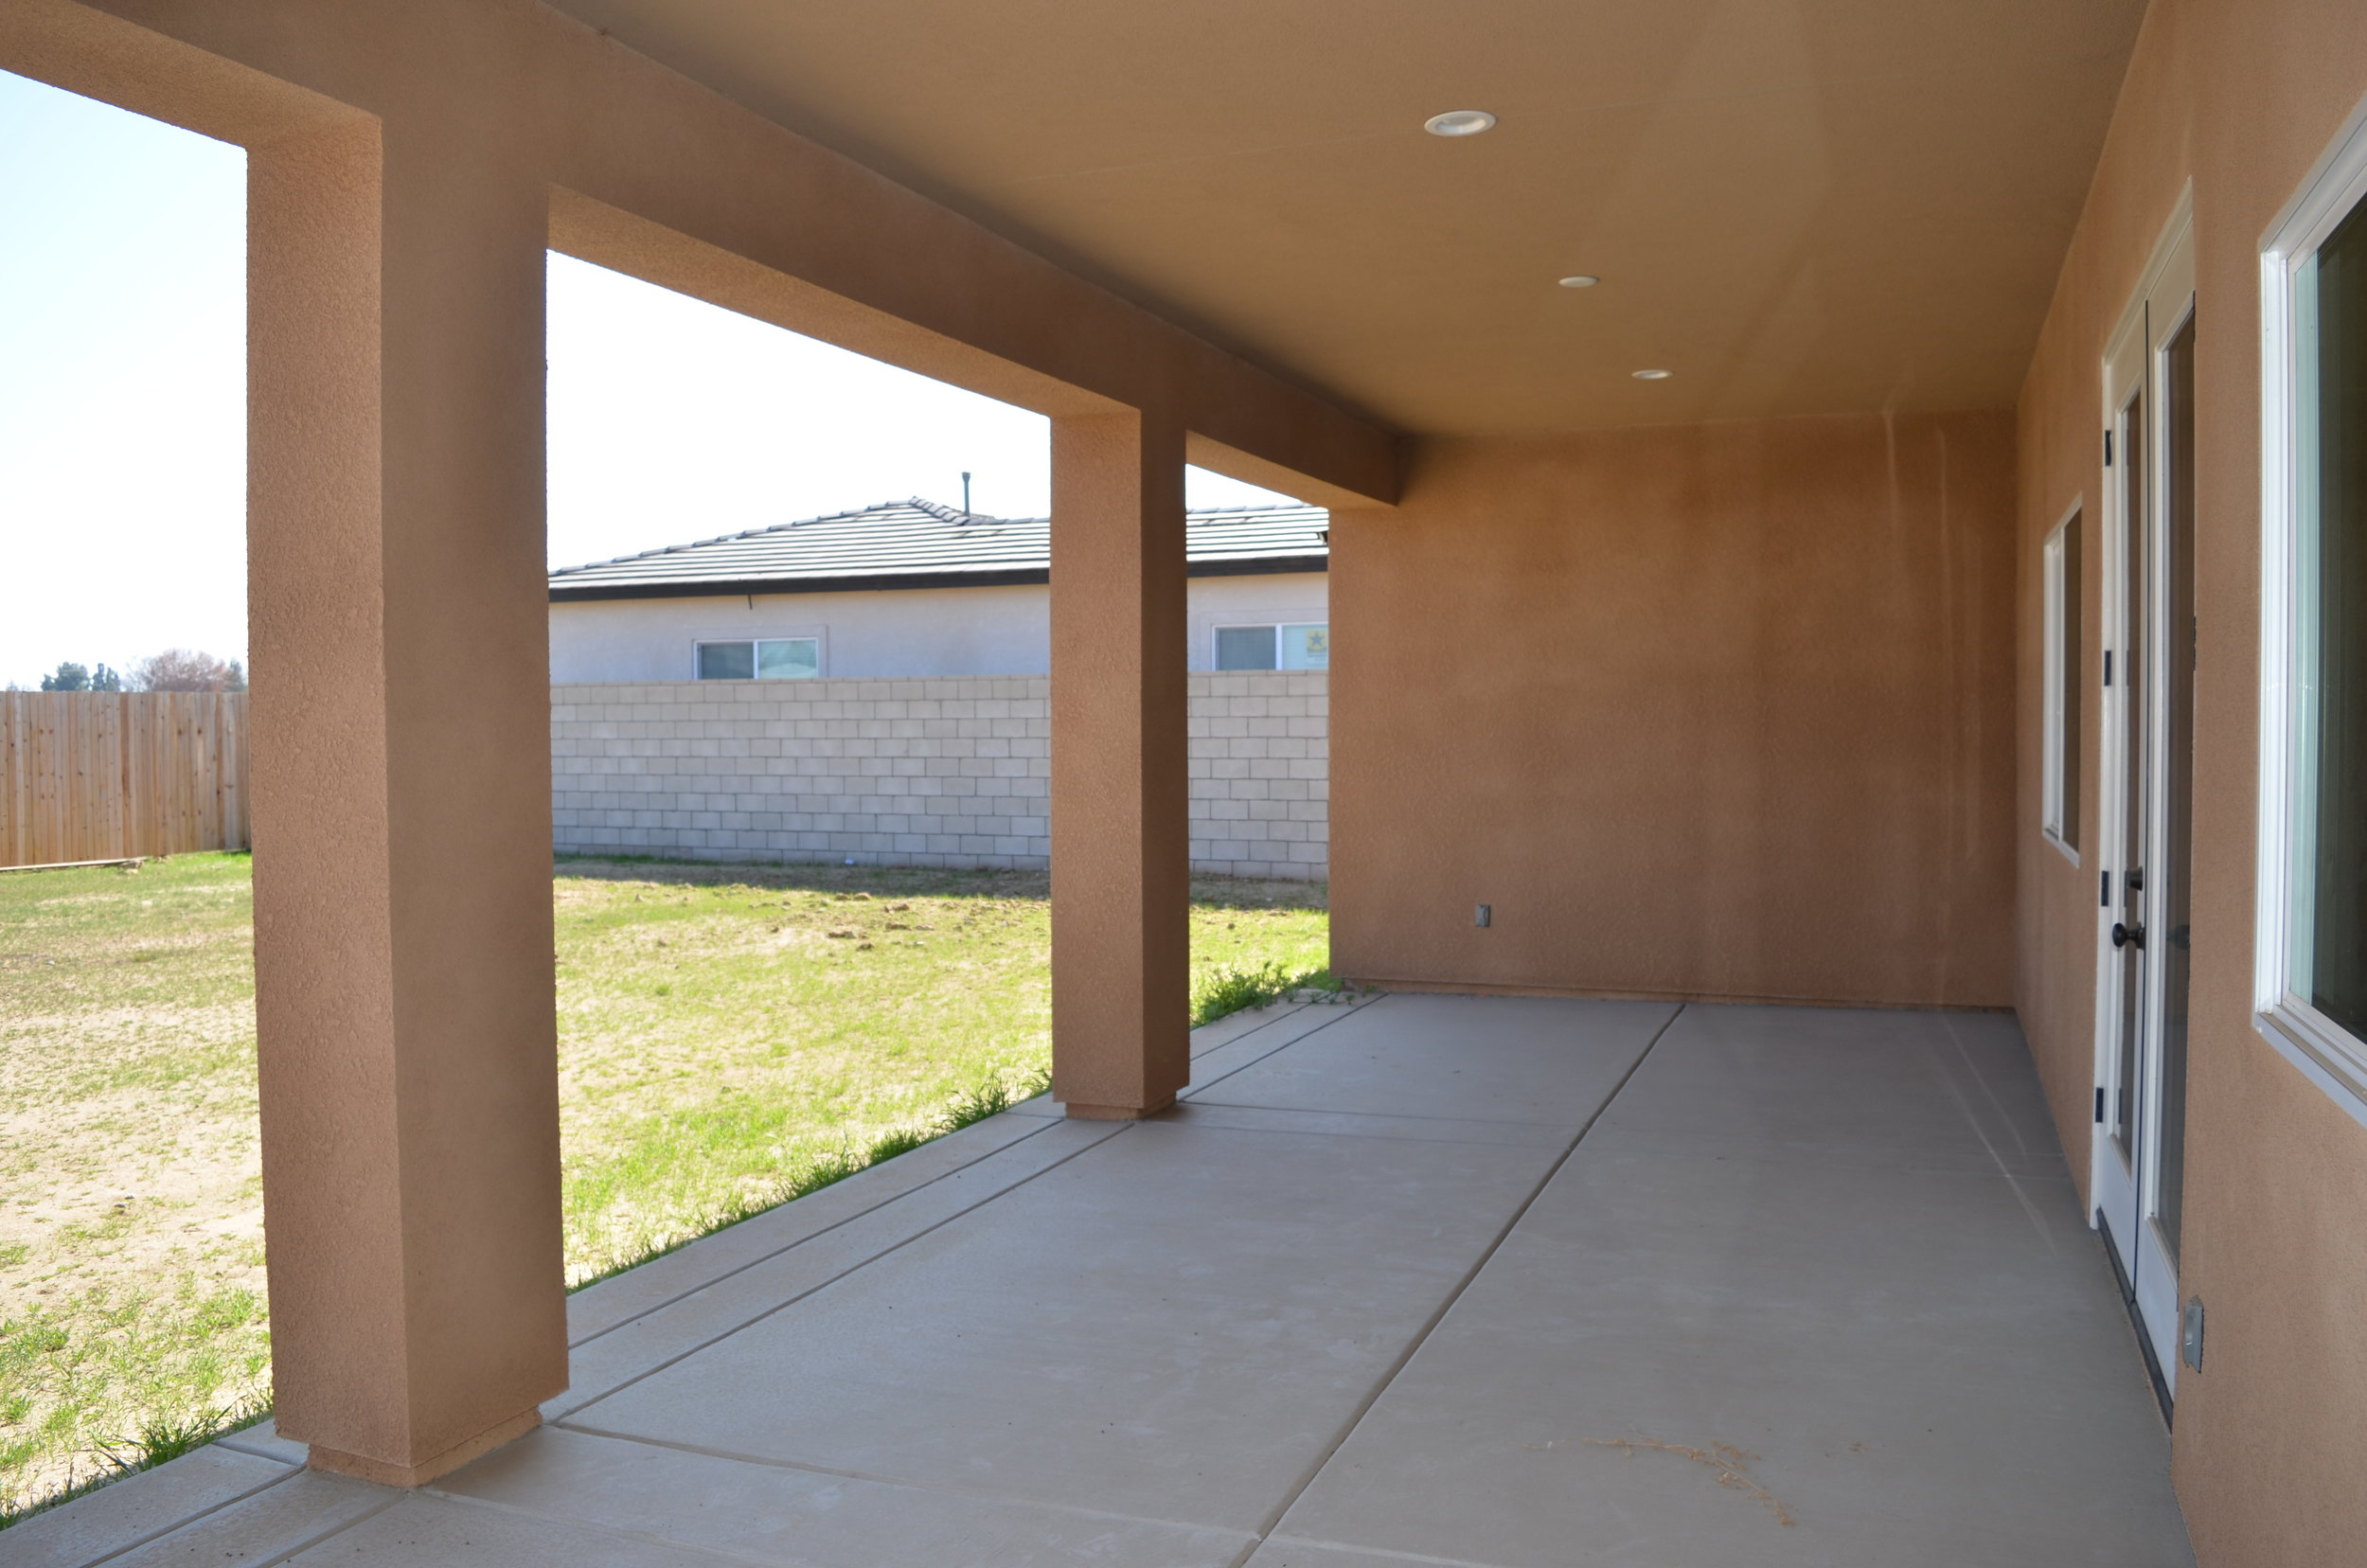 26 - Covered Patio.JPG